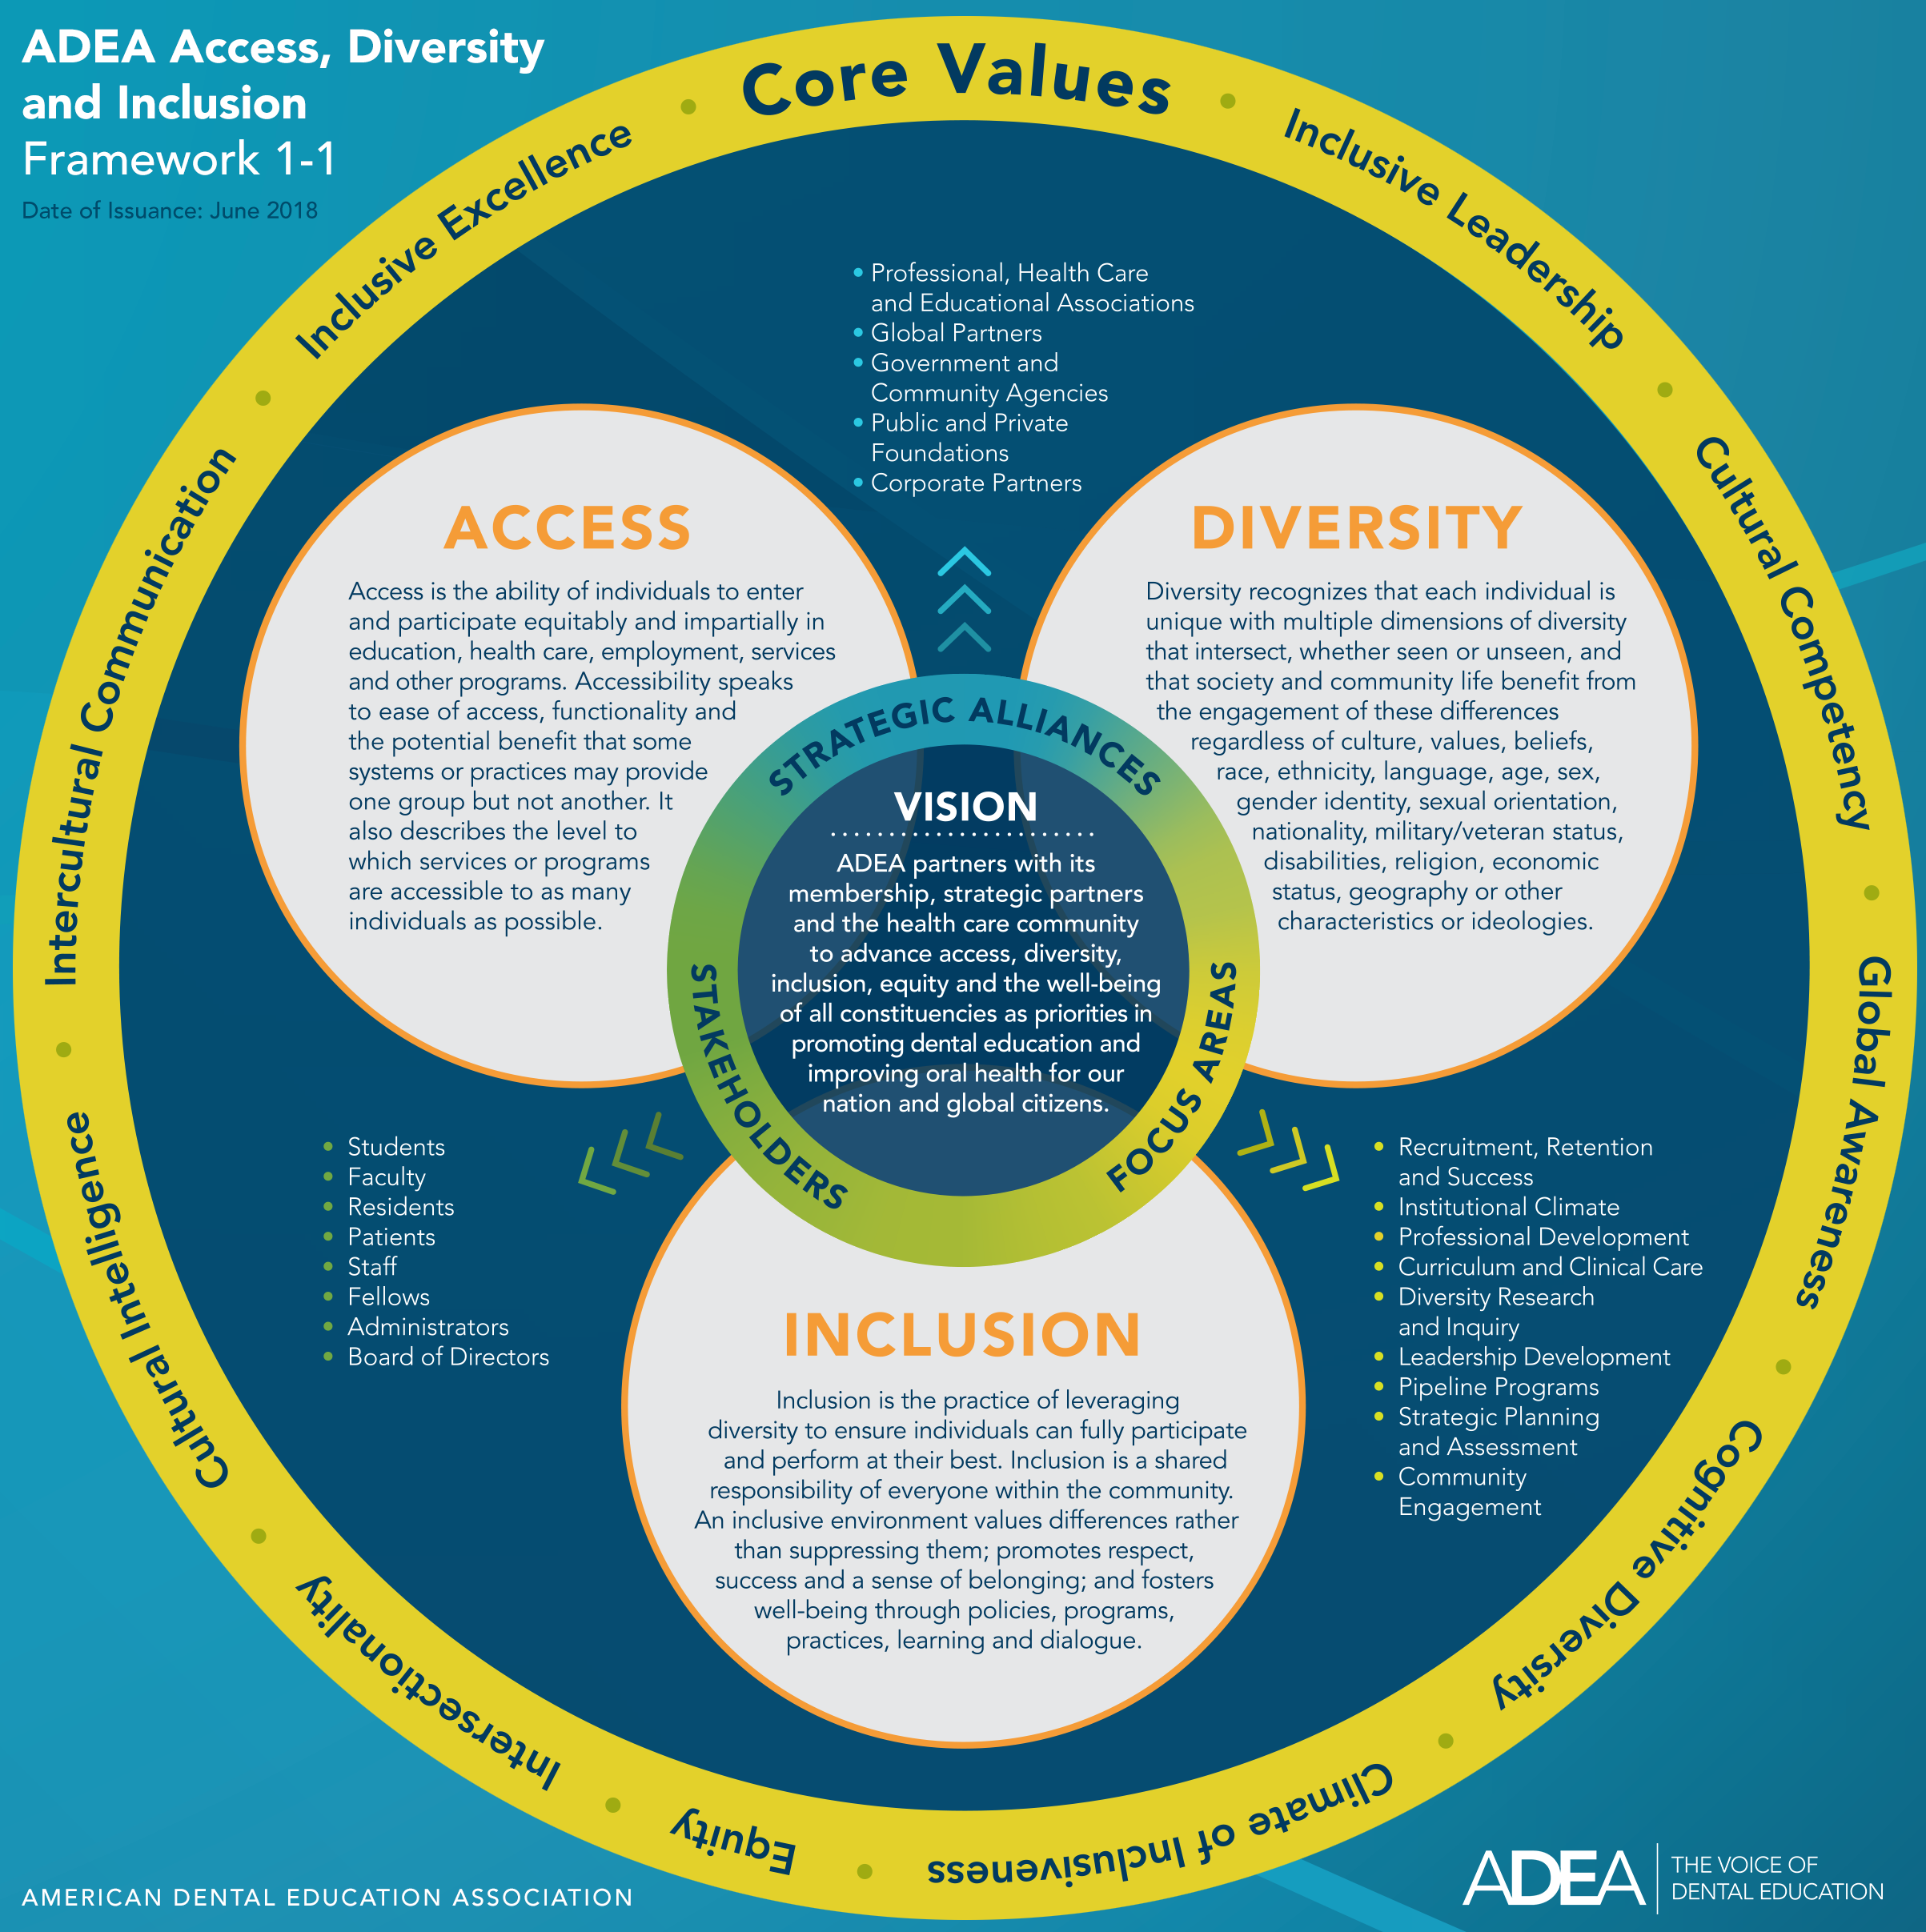 ADEA ADI Strategic Framework